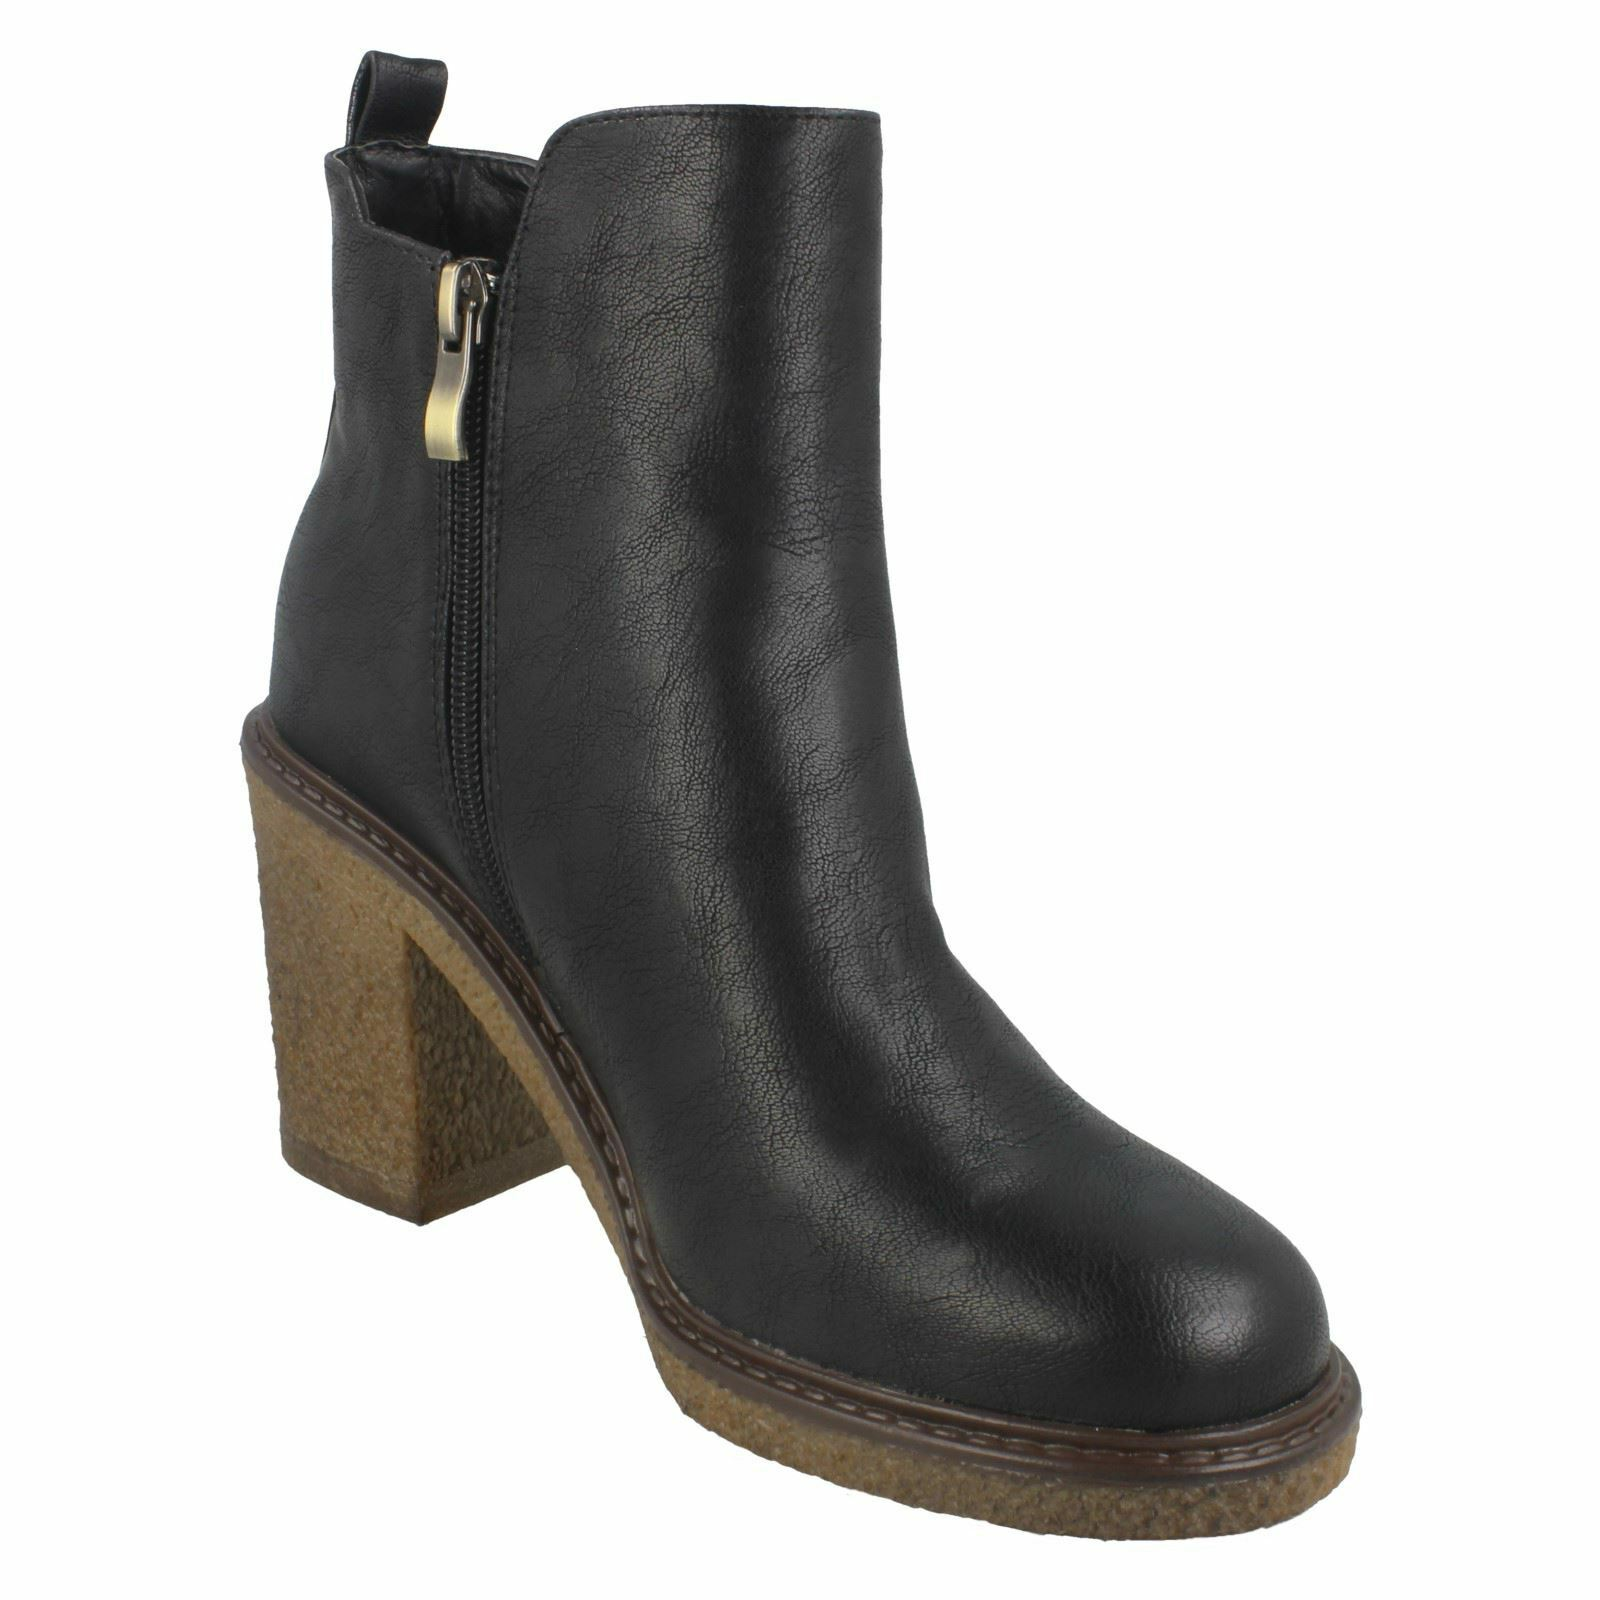 LADIES DOWN TO EARTH WINTER HIGH HIGH HIGH HEELED ZIP UP CASUAL ANKLE Stiefel Schuhe F5R0958 d96732